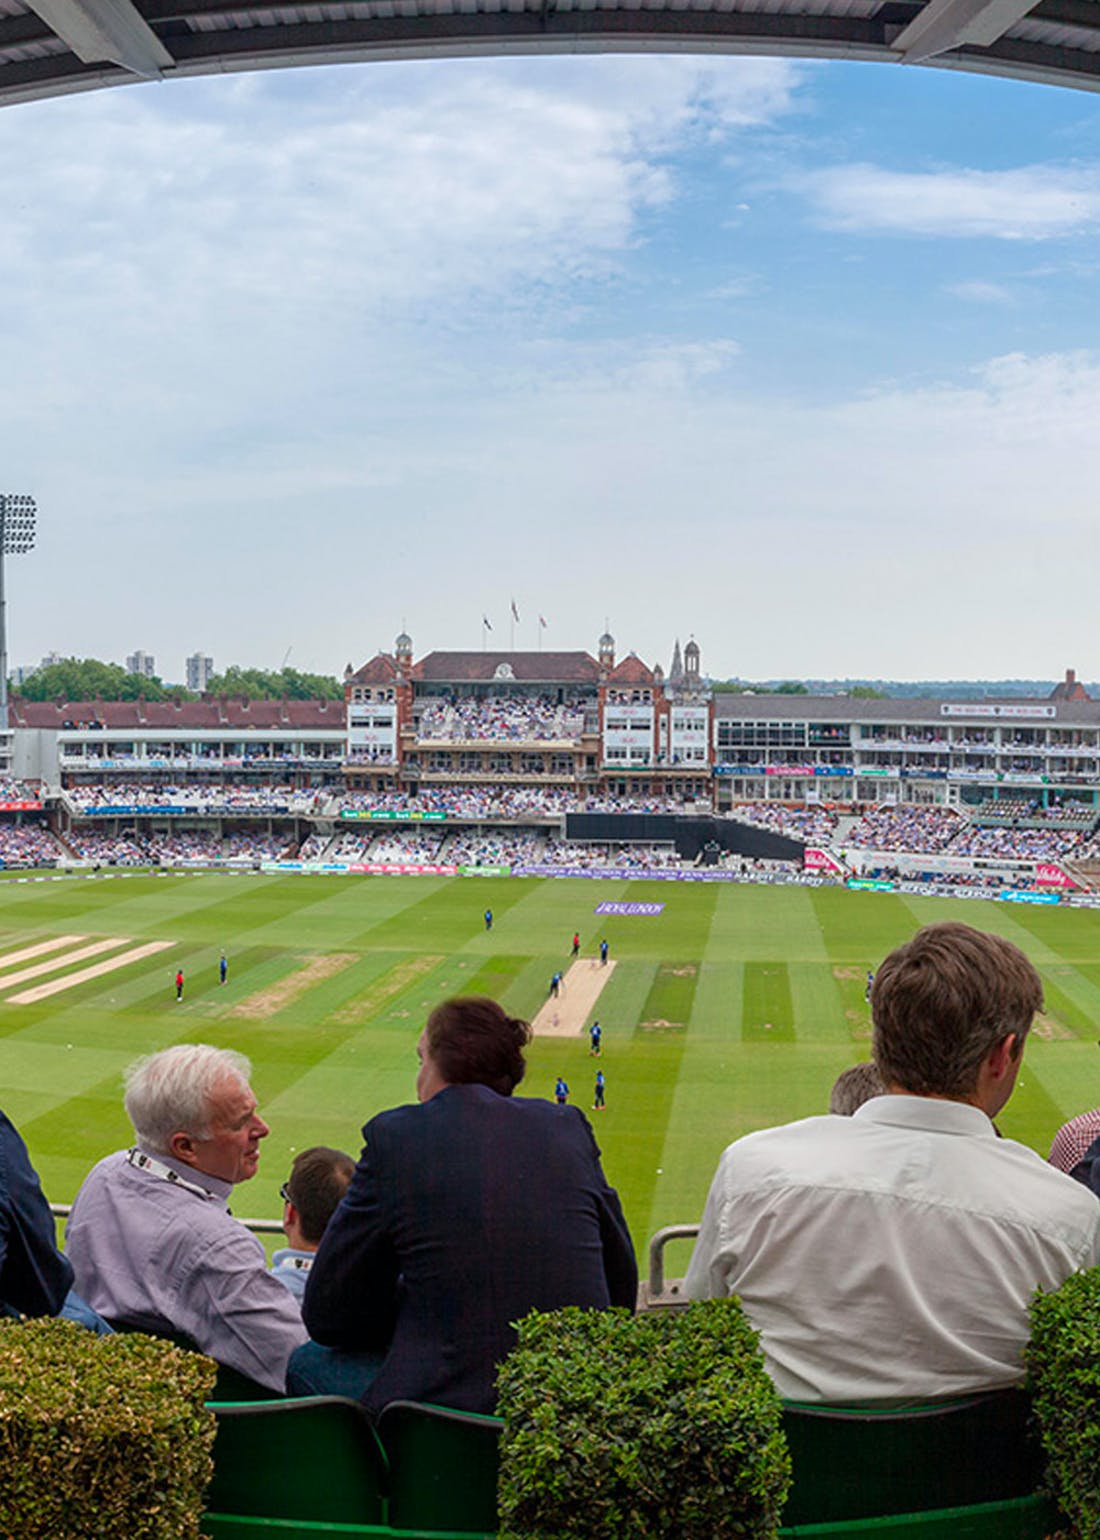 Virgin Experience Days The Kia Oval Cricket Ground Tour for 2